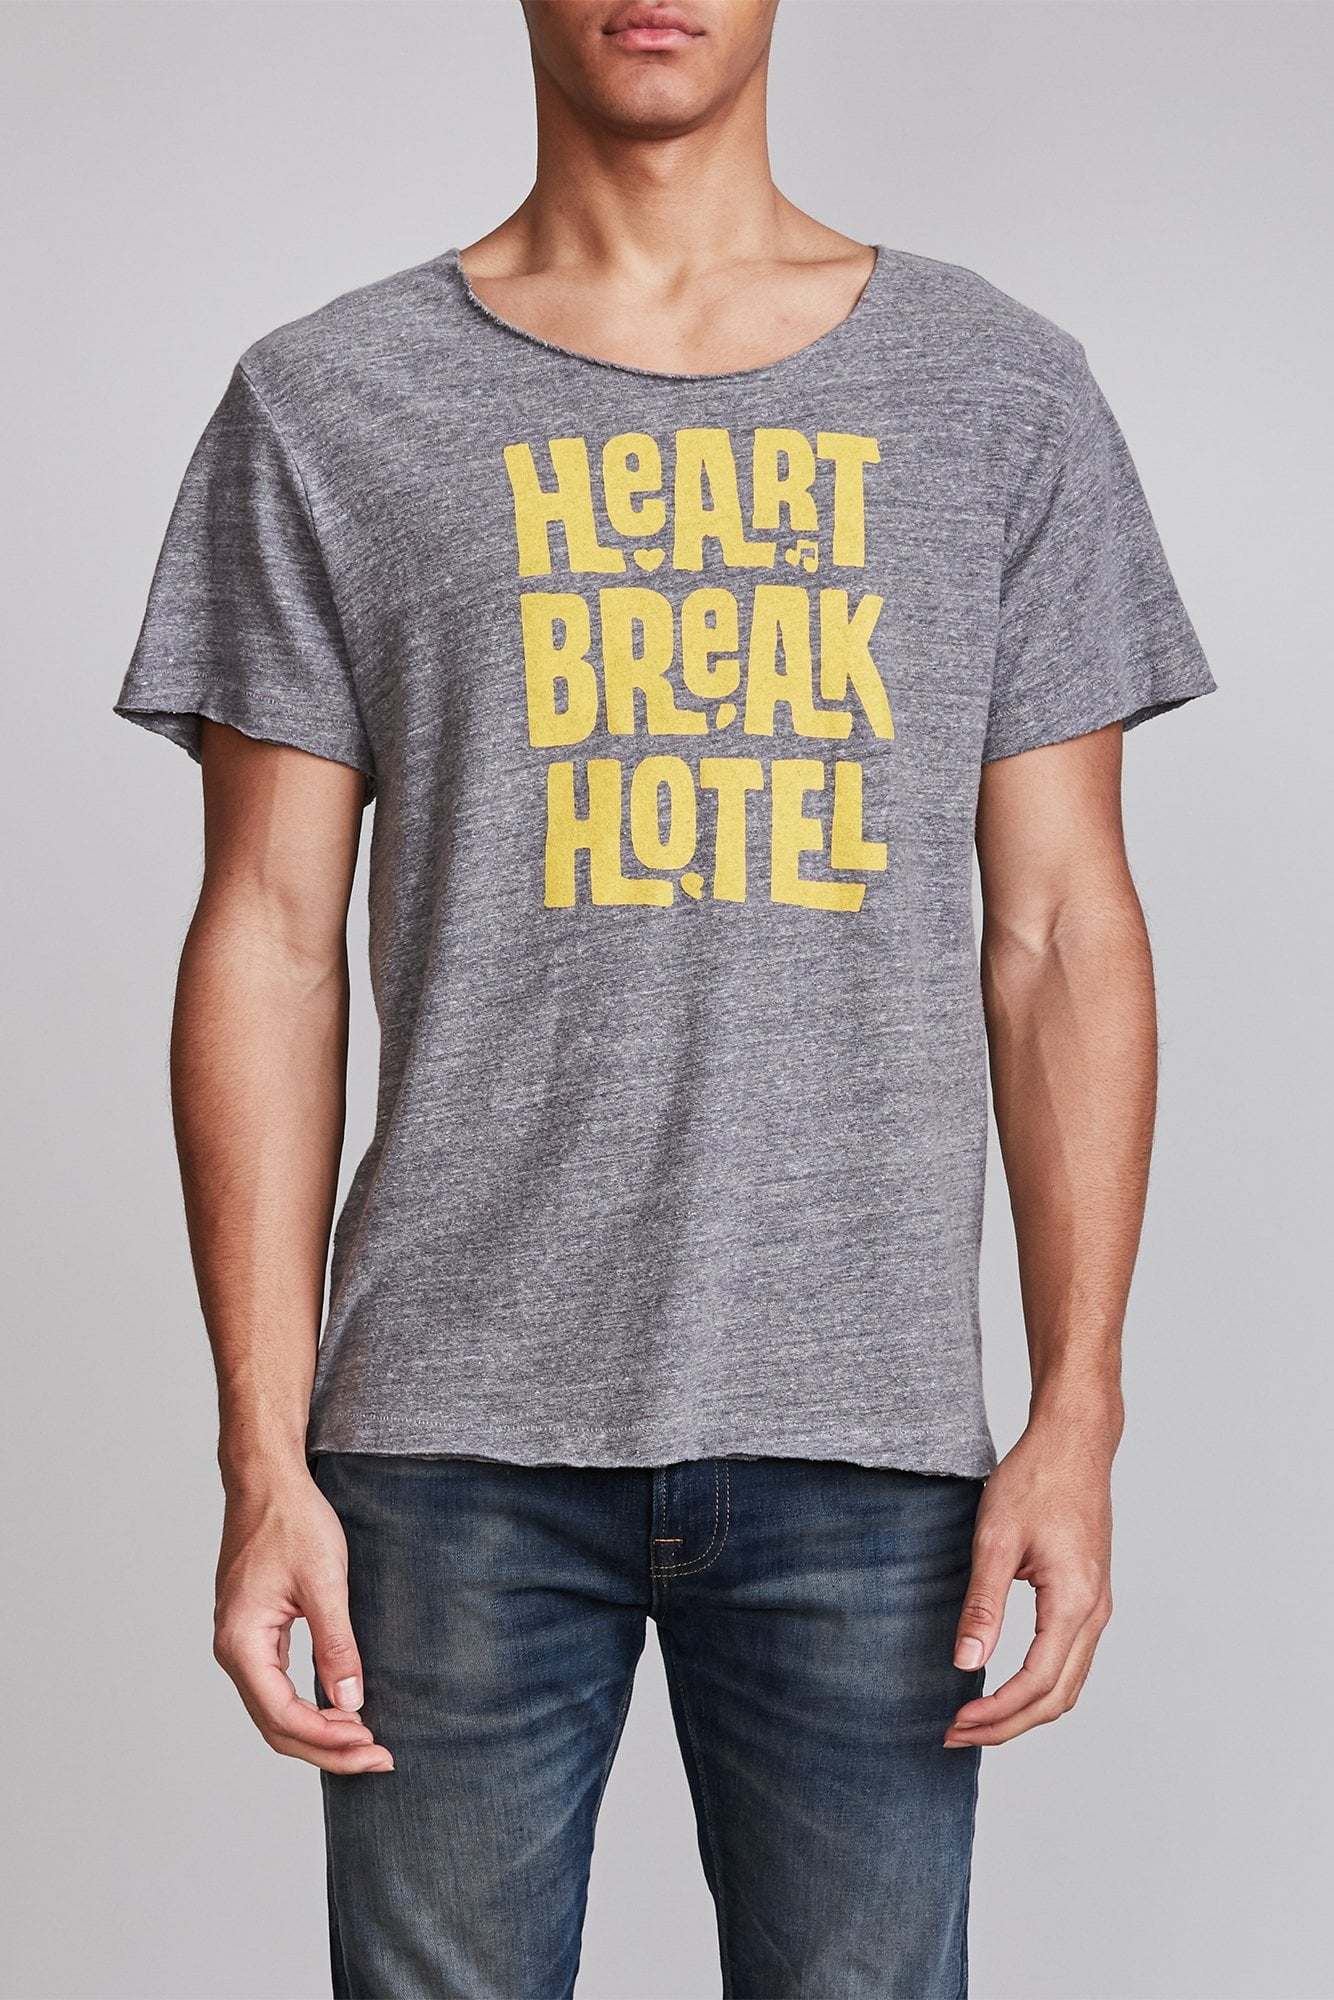 Heart Break Hotel Rosie T